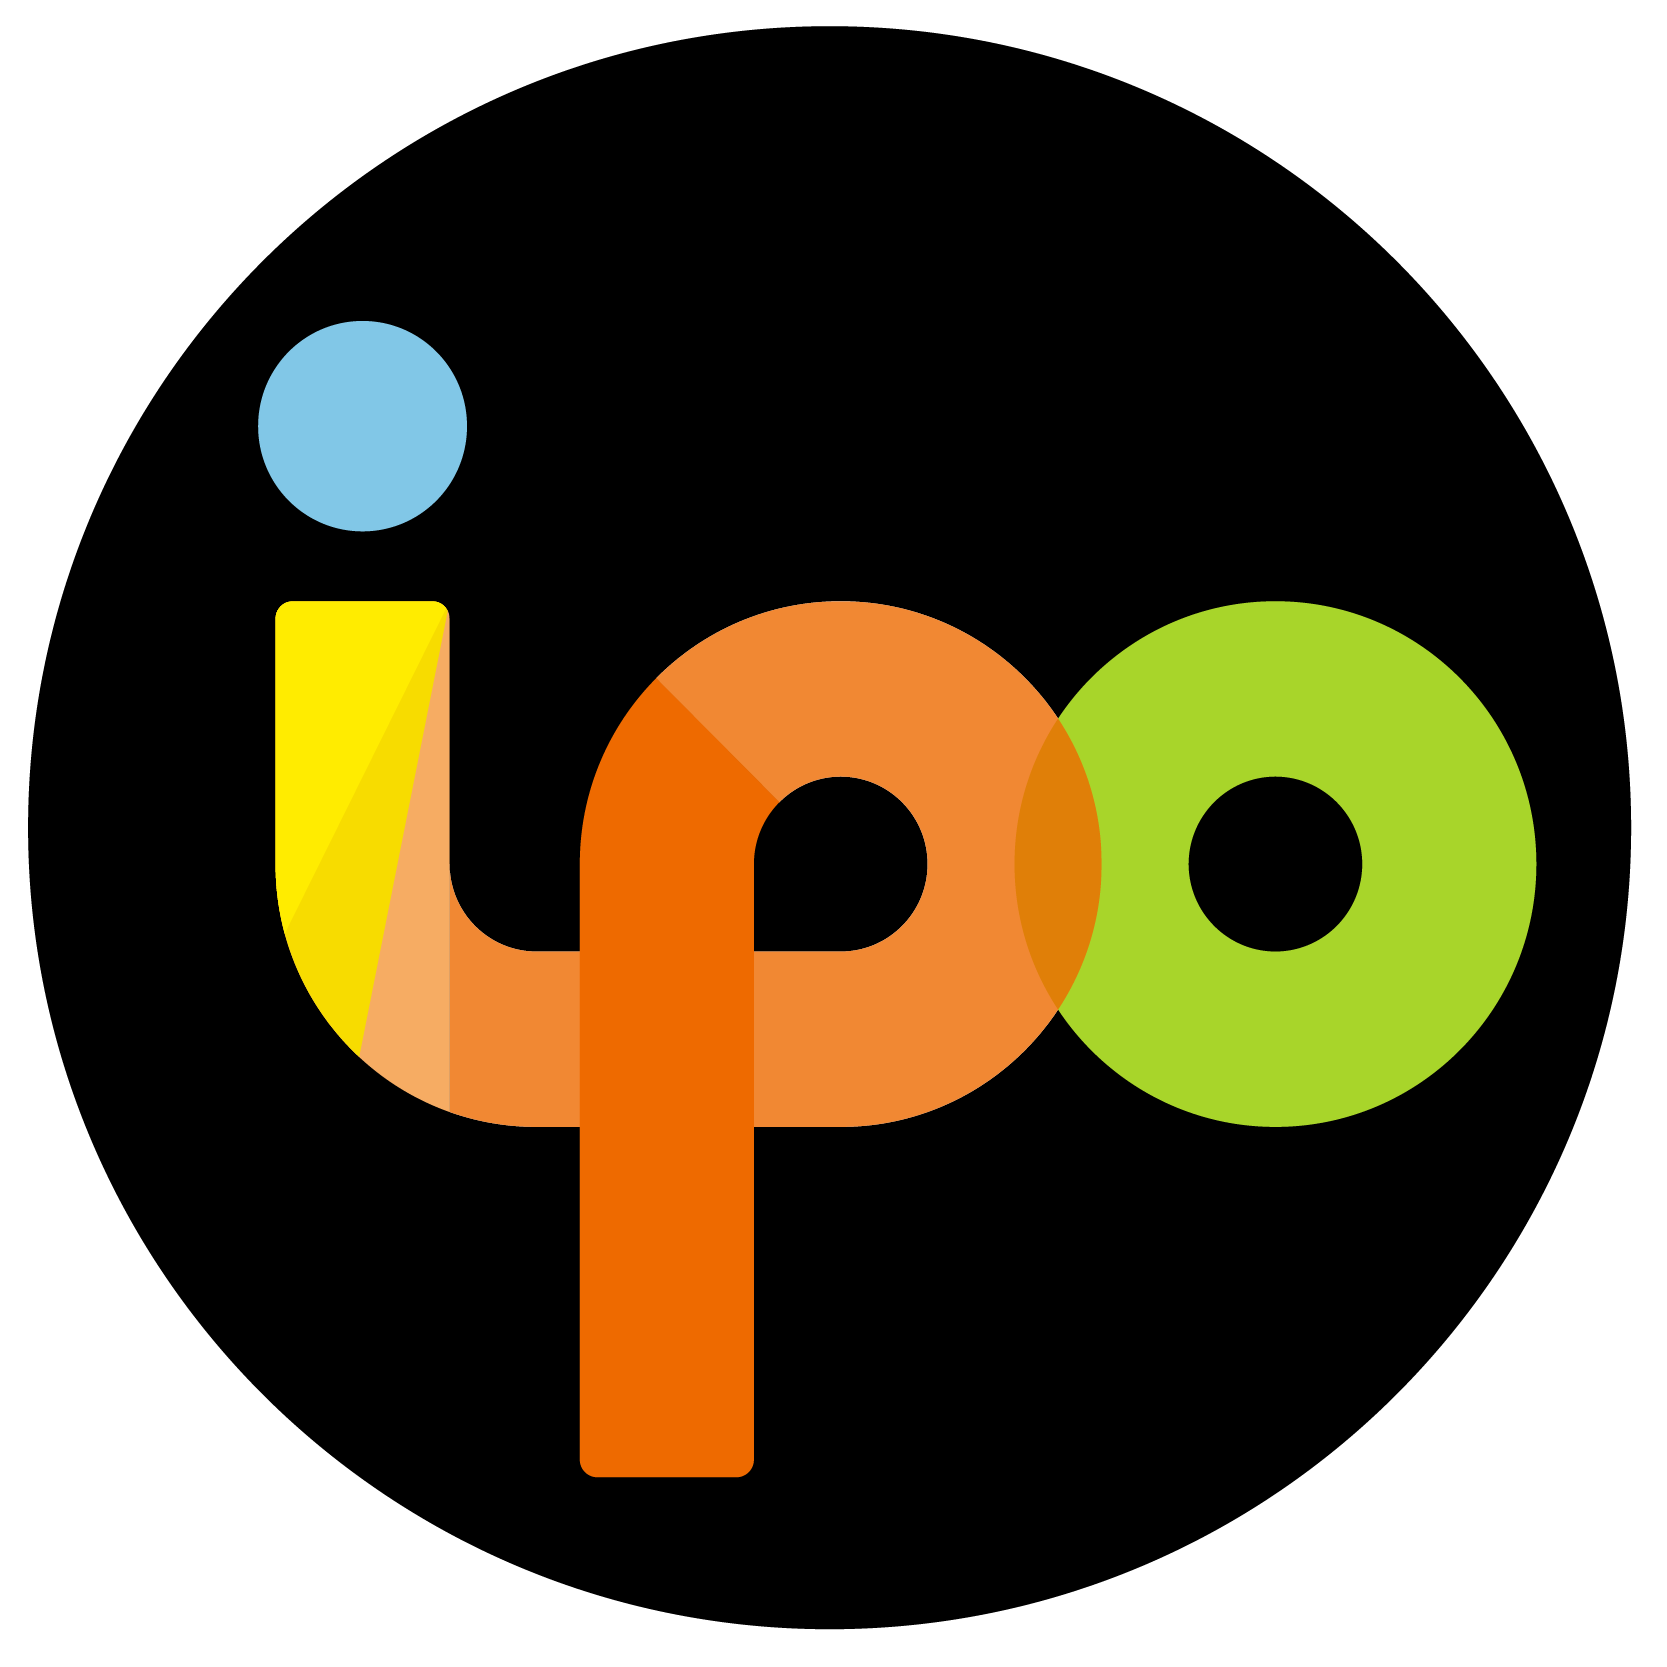 Blog ipo networks